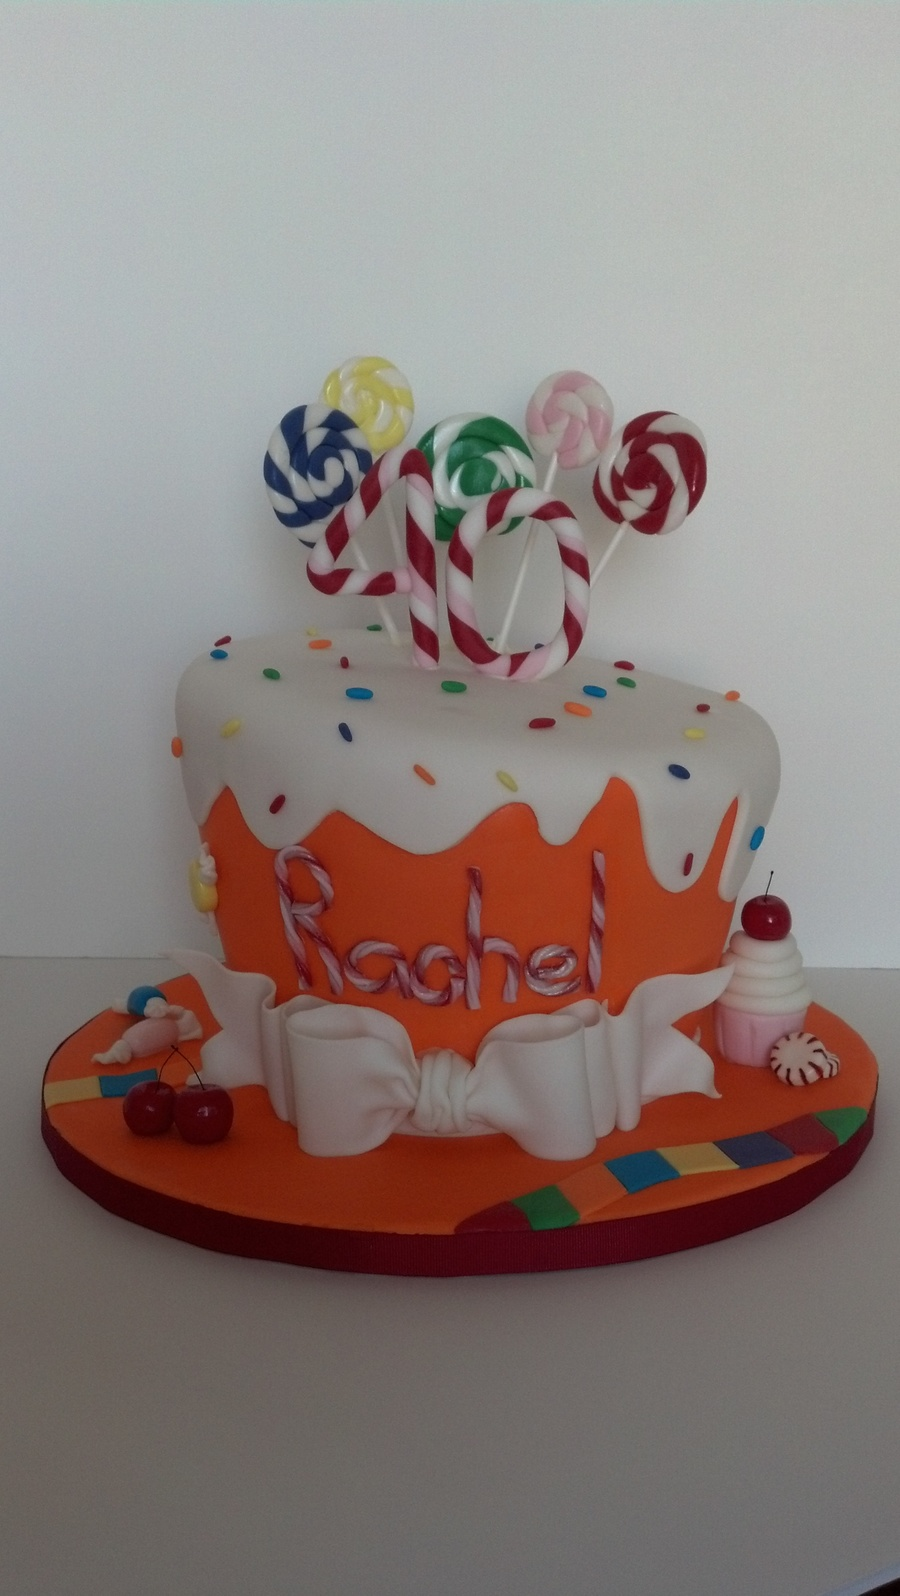 Cake Central Edible Images : Candyland Birthday Cake With Edible Fondant Candy ...